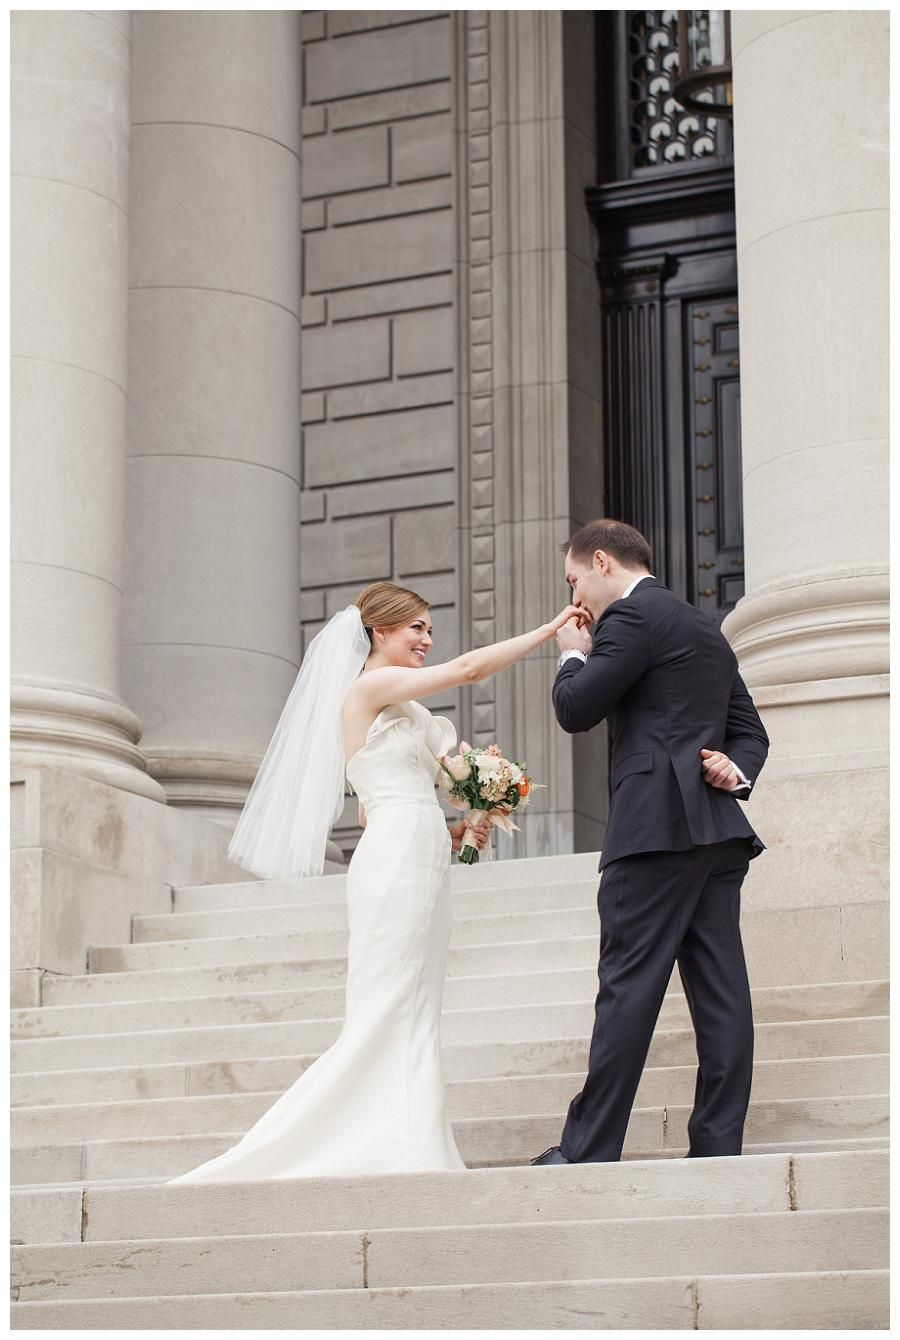 Beautiful bride and groom at the Carnegie Institution for Science in Washington, D.C. Bride's dress by J. Mendel and bouquet by Petals & Hedges. Image by Birds of a Feather.